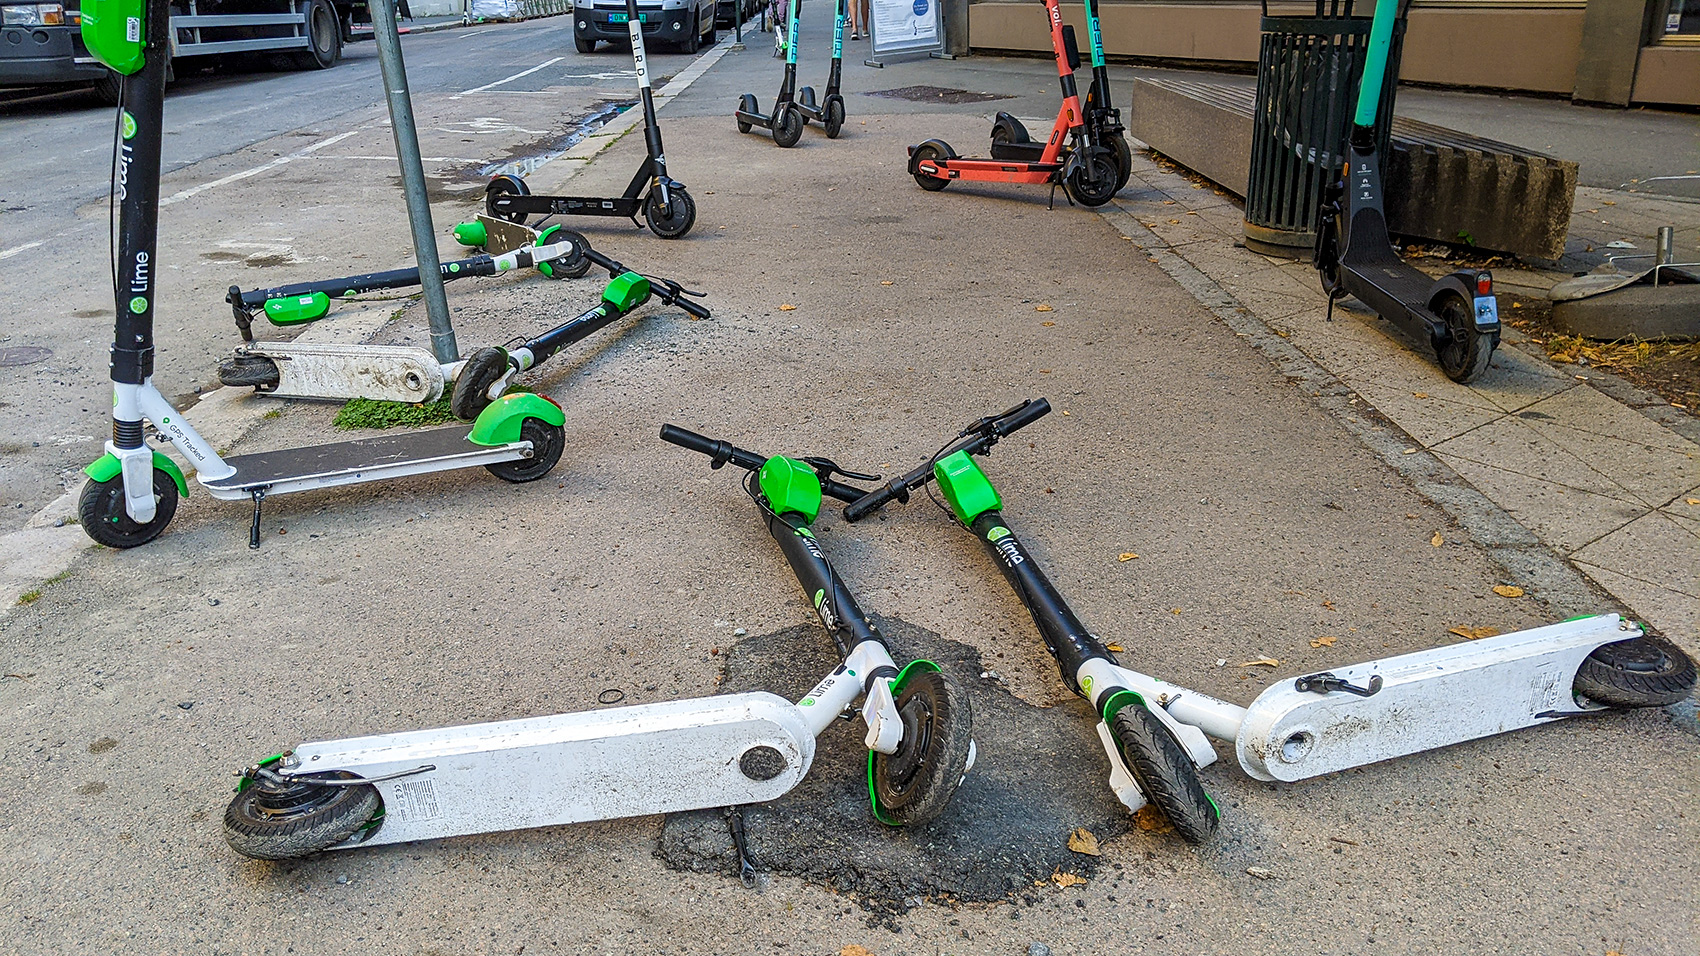 E-scooters are blocking a sidewalk in Oslo, Norway.